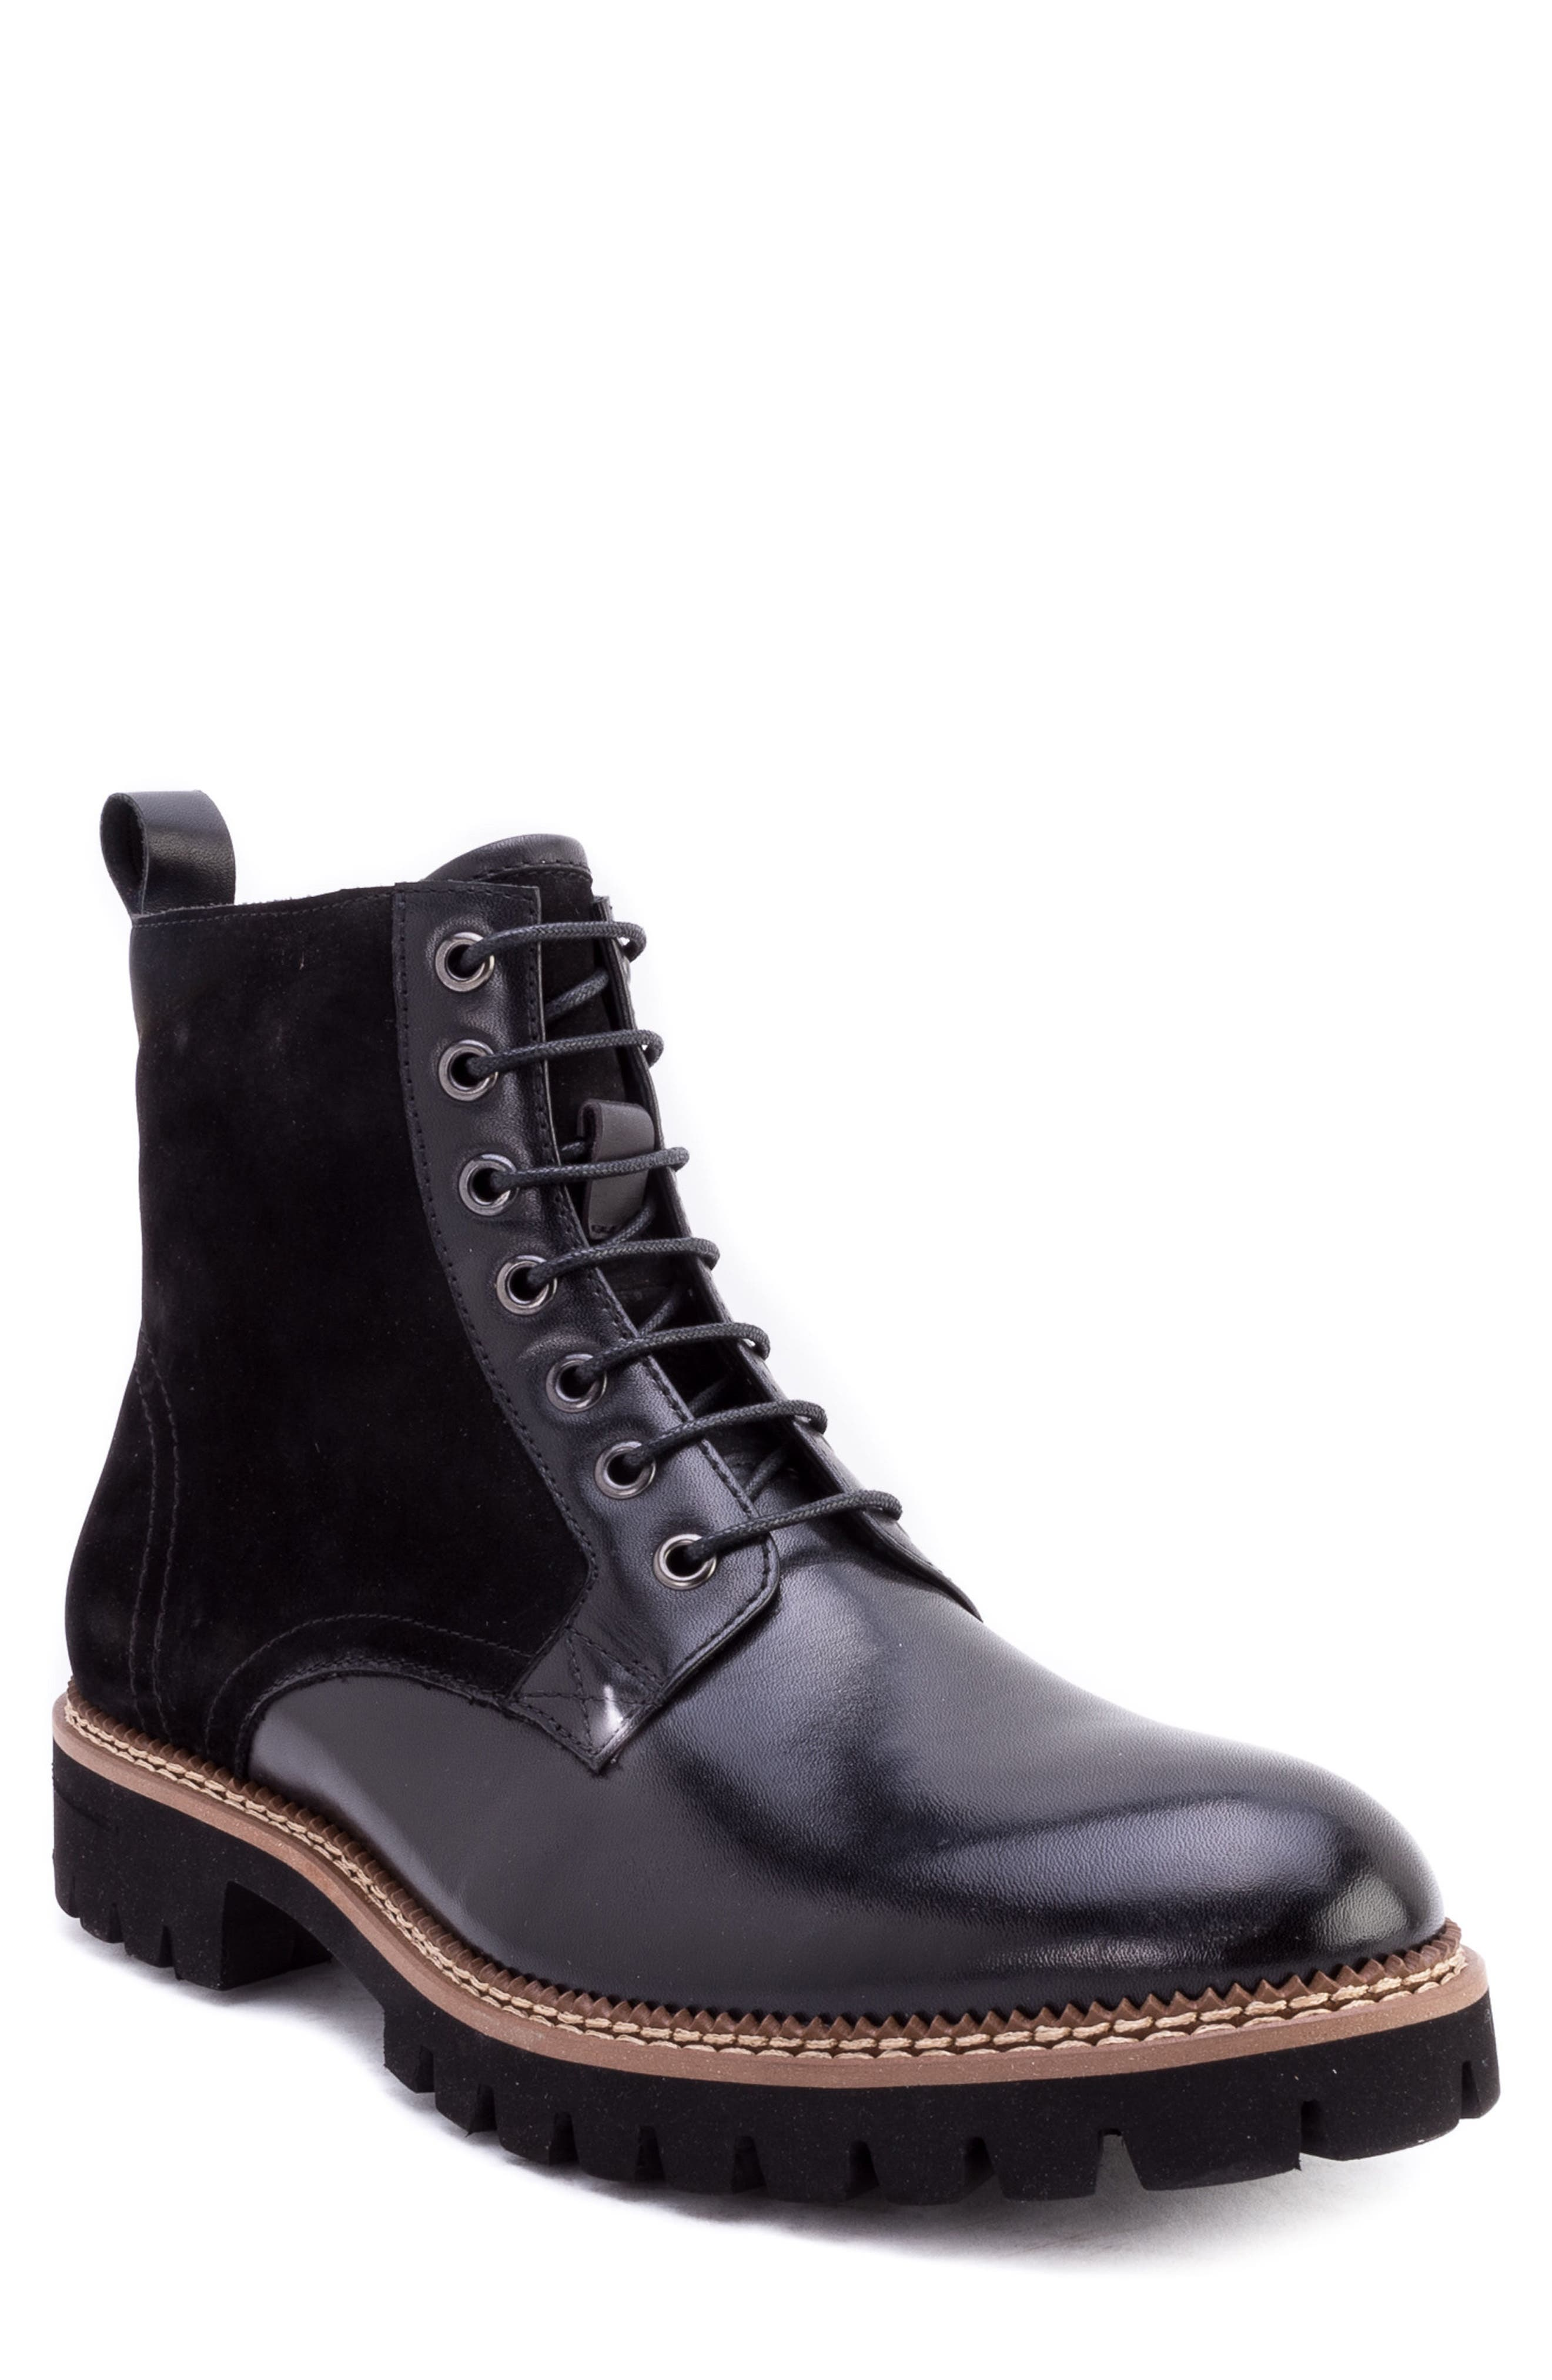 Millet Water Resistant Lugged Boot,                             Main thumbnail 1, color,                             BLACK LEATHER